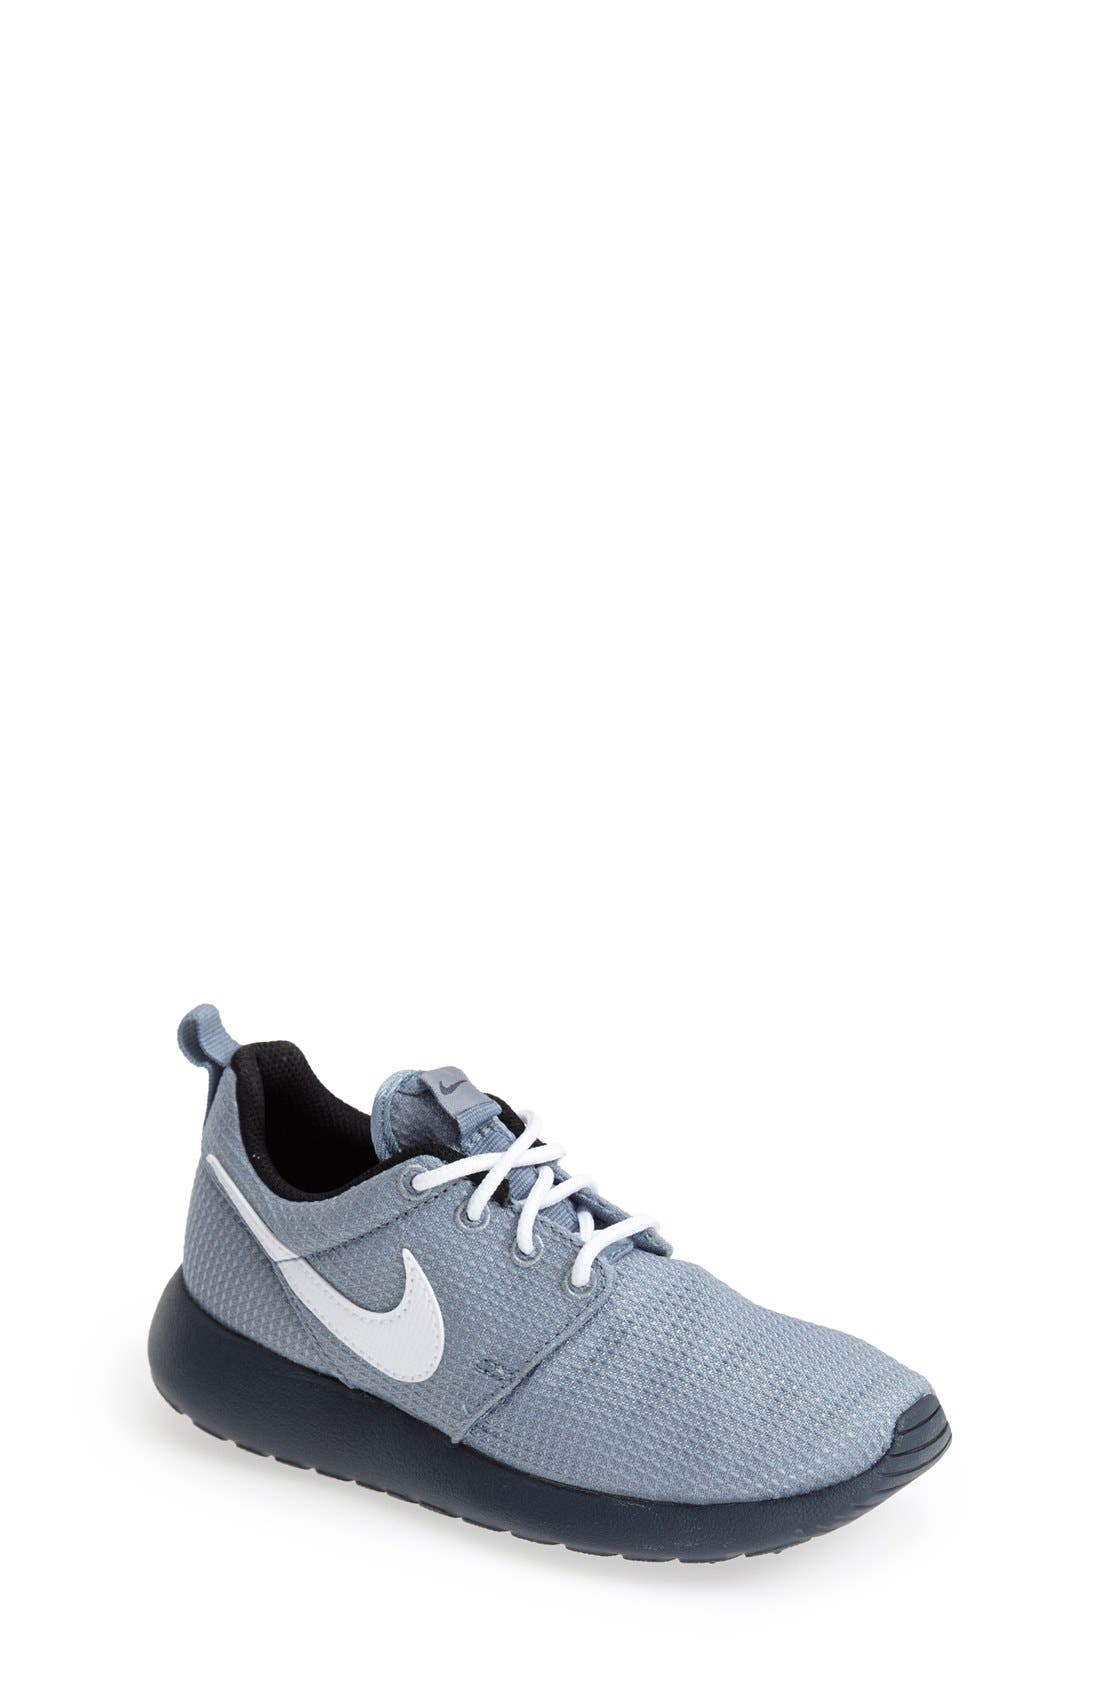 'Roshe Run' Sneaker,                             Main thumbnail 24, color,